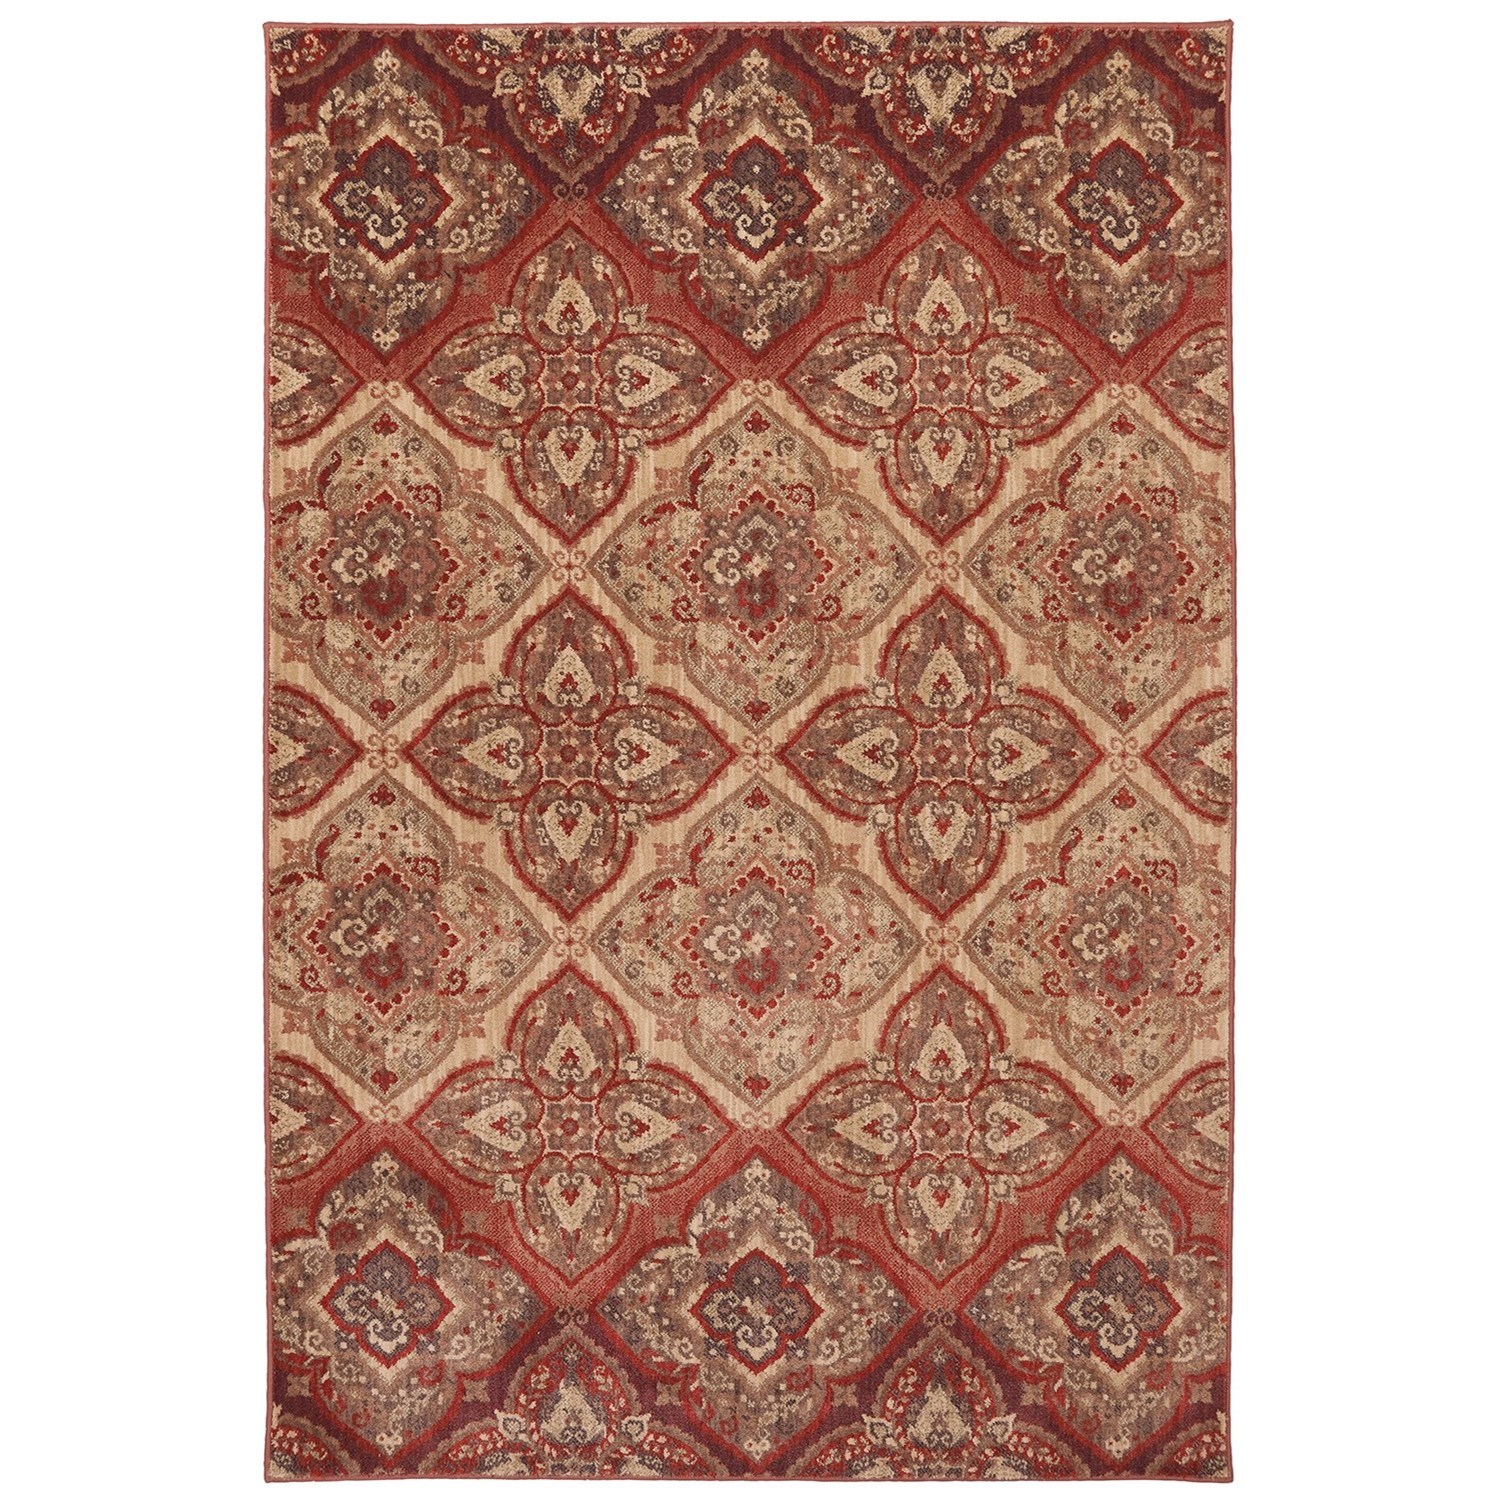 """Dryden 5' 3""""x7' 10"""" Chapel Mesquite Area Rug by American Rug Craftsmen at Alison Craig Home Furnishings"""